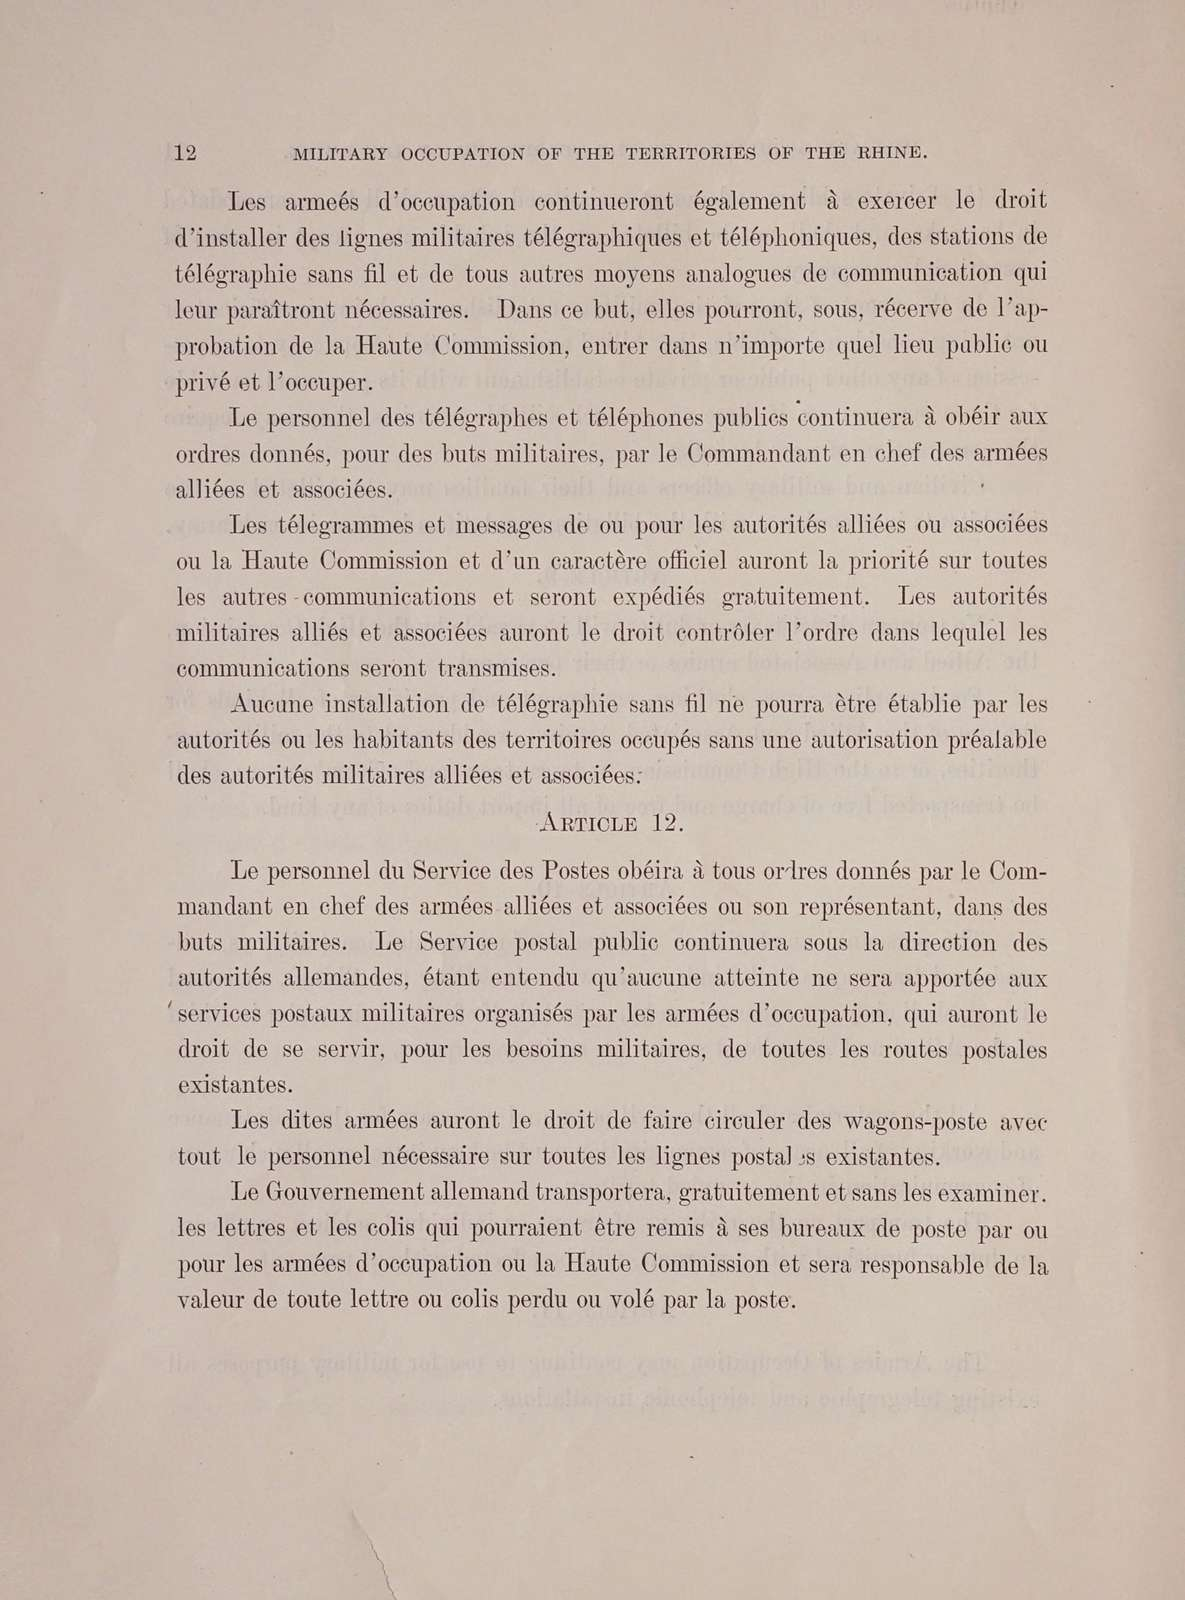 Military occupation of the territories of the Rhine. Message from the President of the United States transmitting an agreement between the United States, Belgium, the British empire, and France, of the one part, and Germany, of the other part, which was signed at Versailles, June 28, 1919, with regard to the military occupation of the territories of the Rhine ..